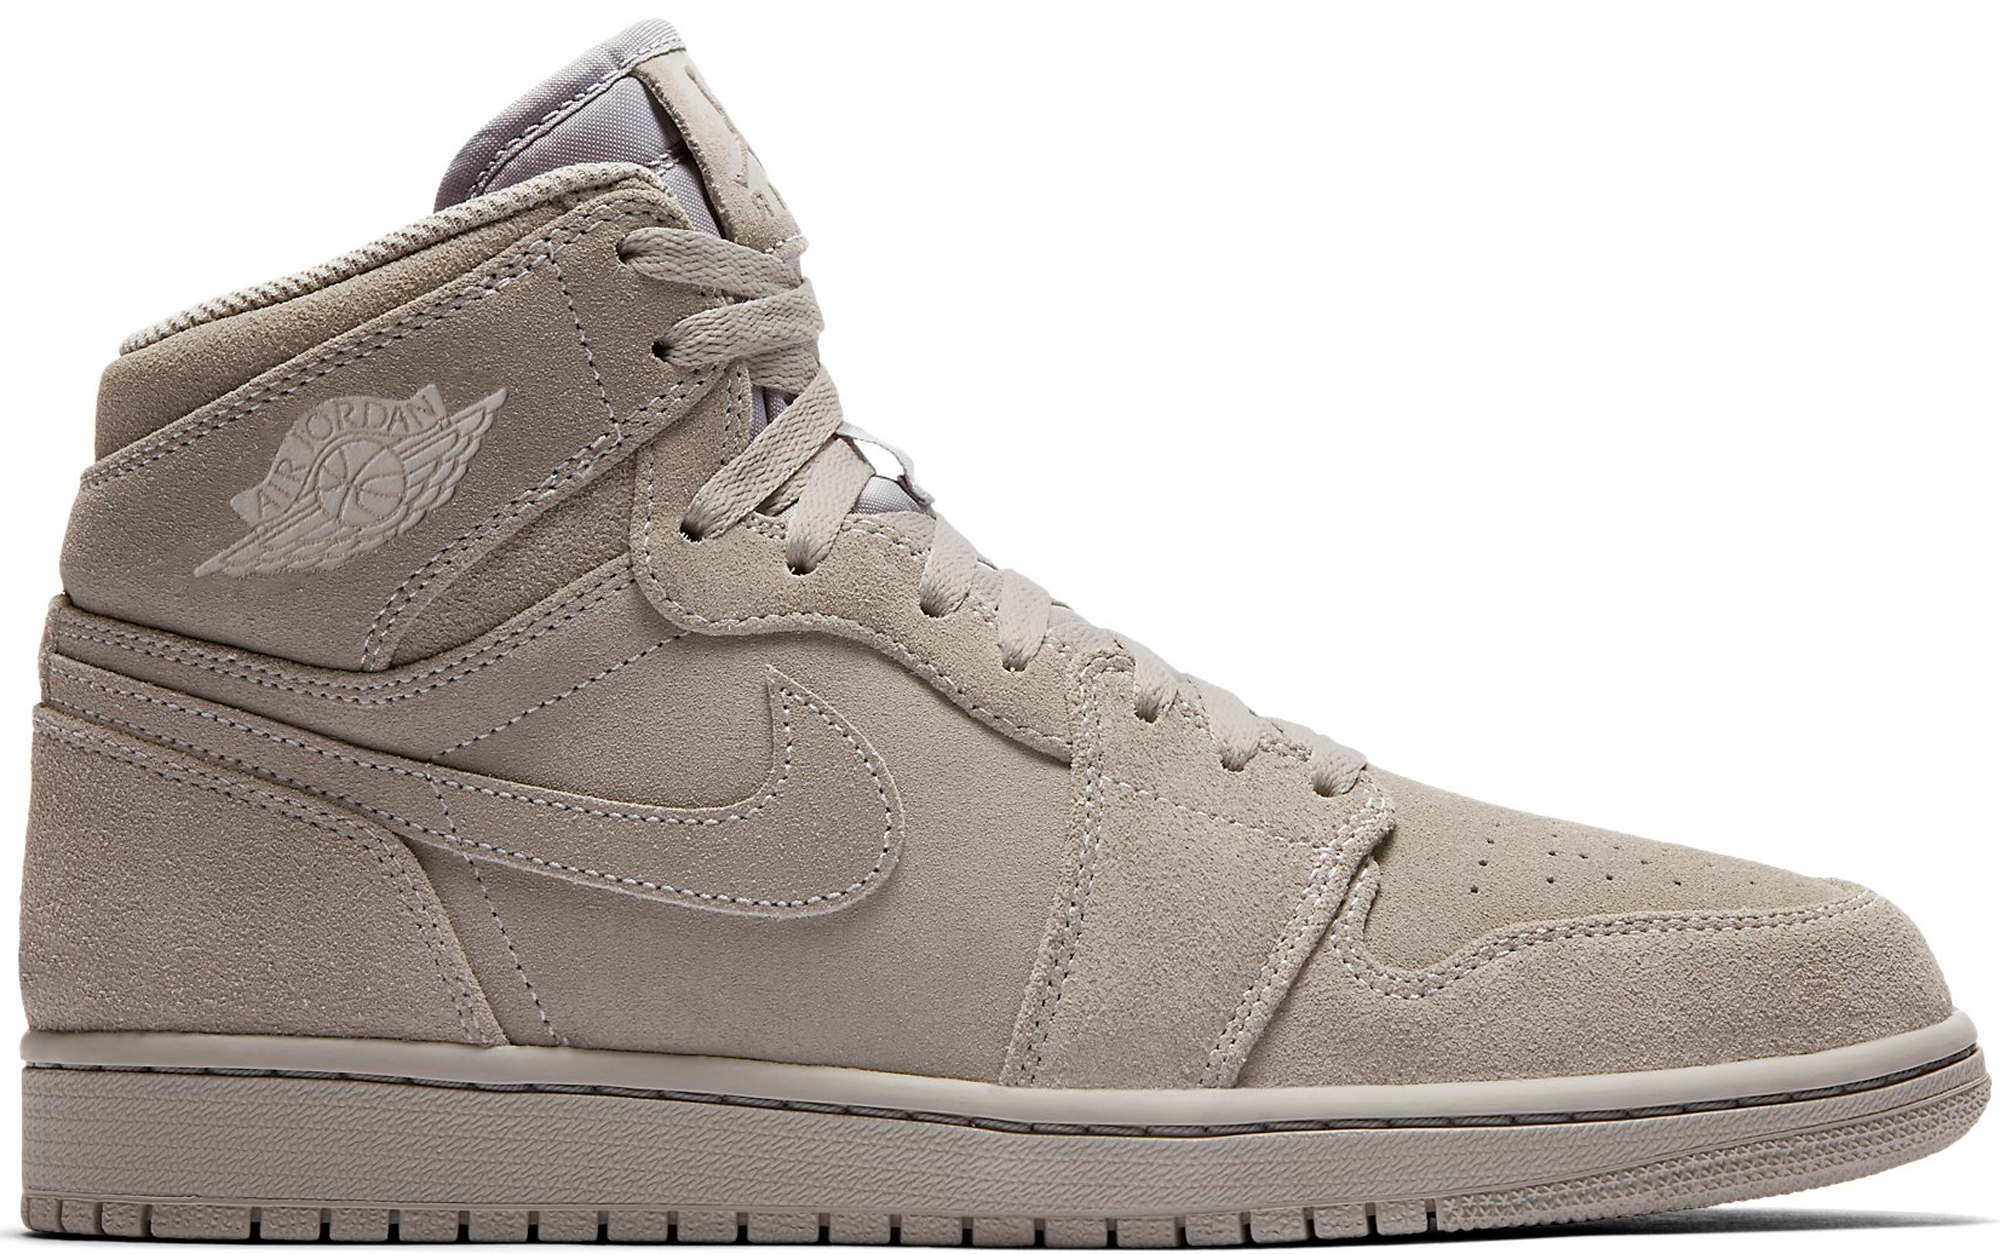 new style d5d86 351df Air Jordan 1 Retro High Wolf Grey Suede